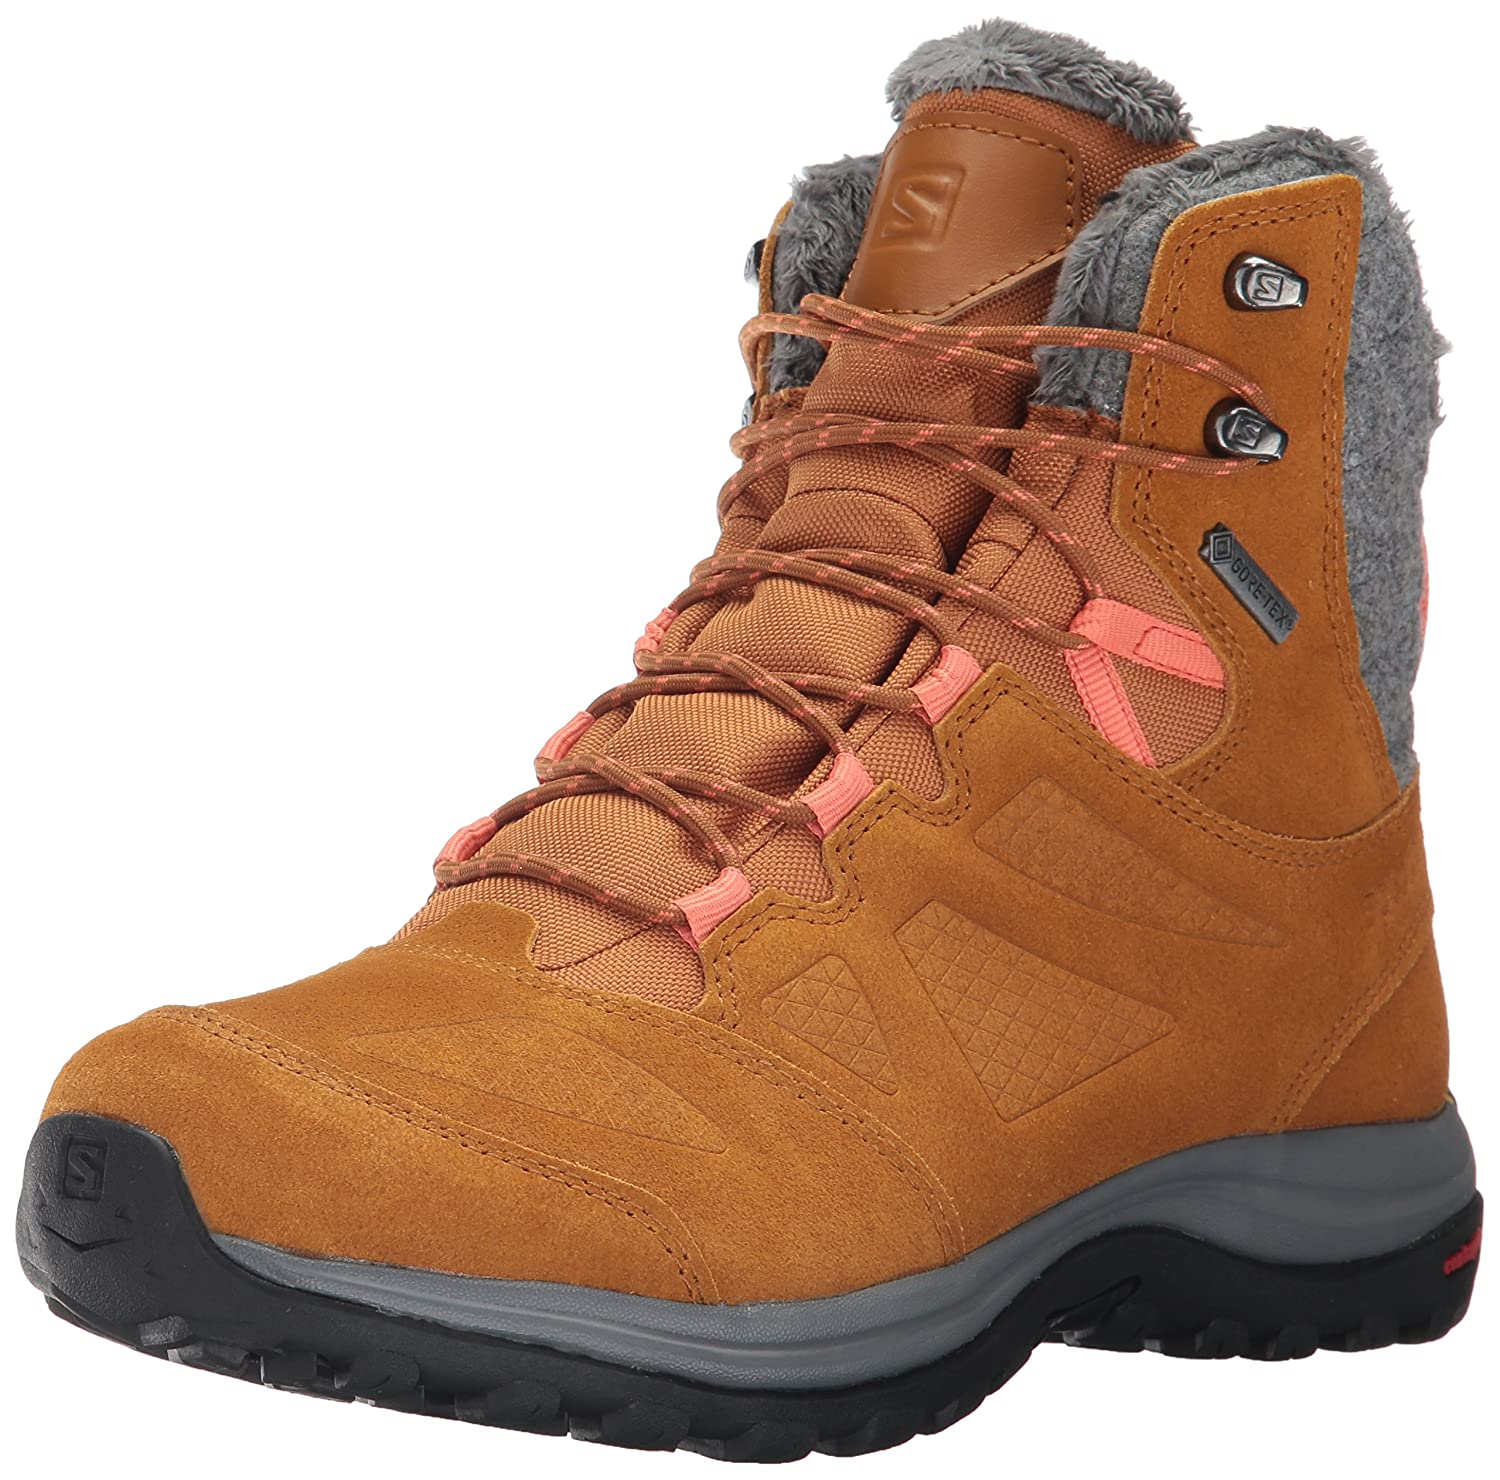 Salomon Women's Ellipse Winter GTX Snow Boot B01MXOY3YJ 6 B(M) US|Rawhide Leather/Rawhide Leather/Living Coral